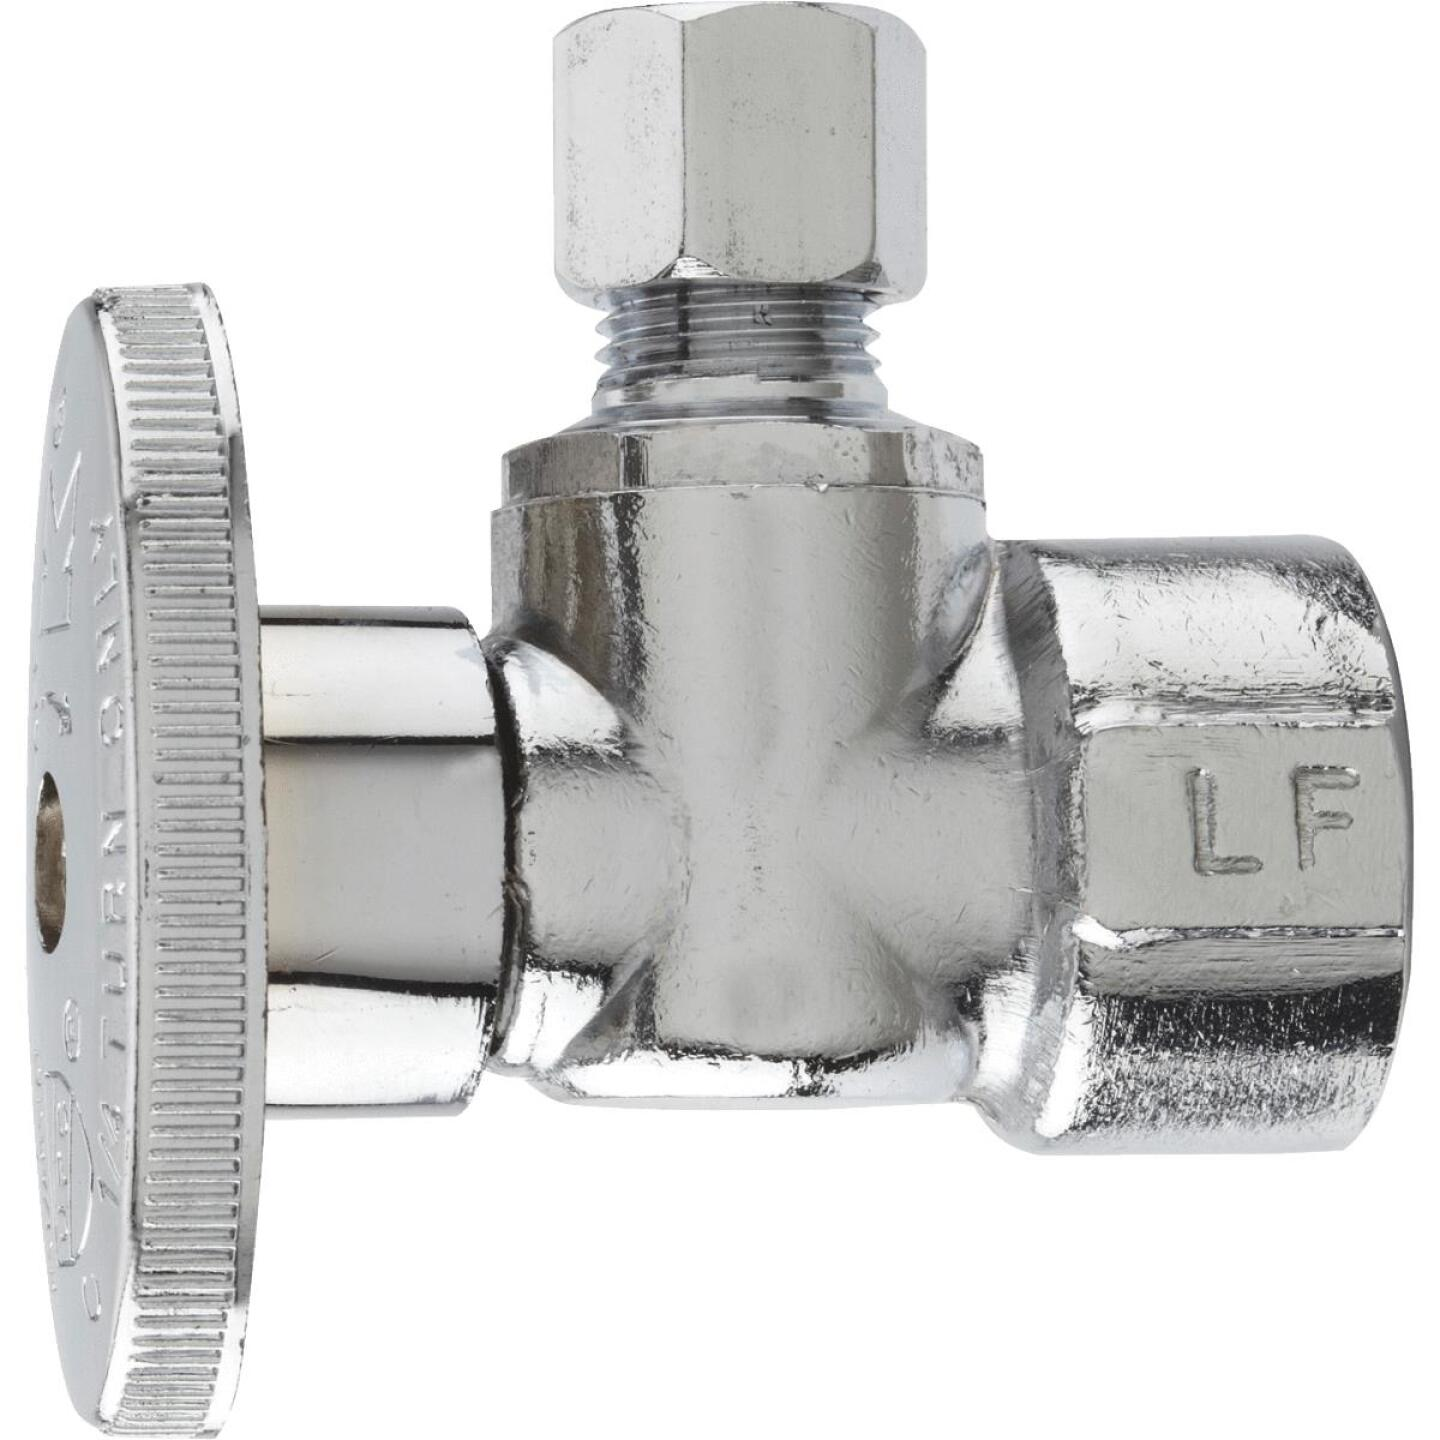 Do it Best 1/2 In. FIP x 1/4 In. OD Chrome-Plated Brass Quarter Turn Angle Valve Image 1